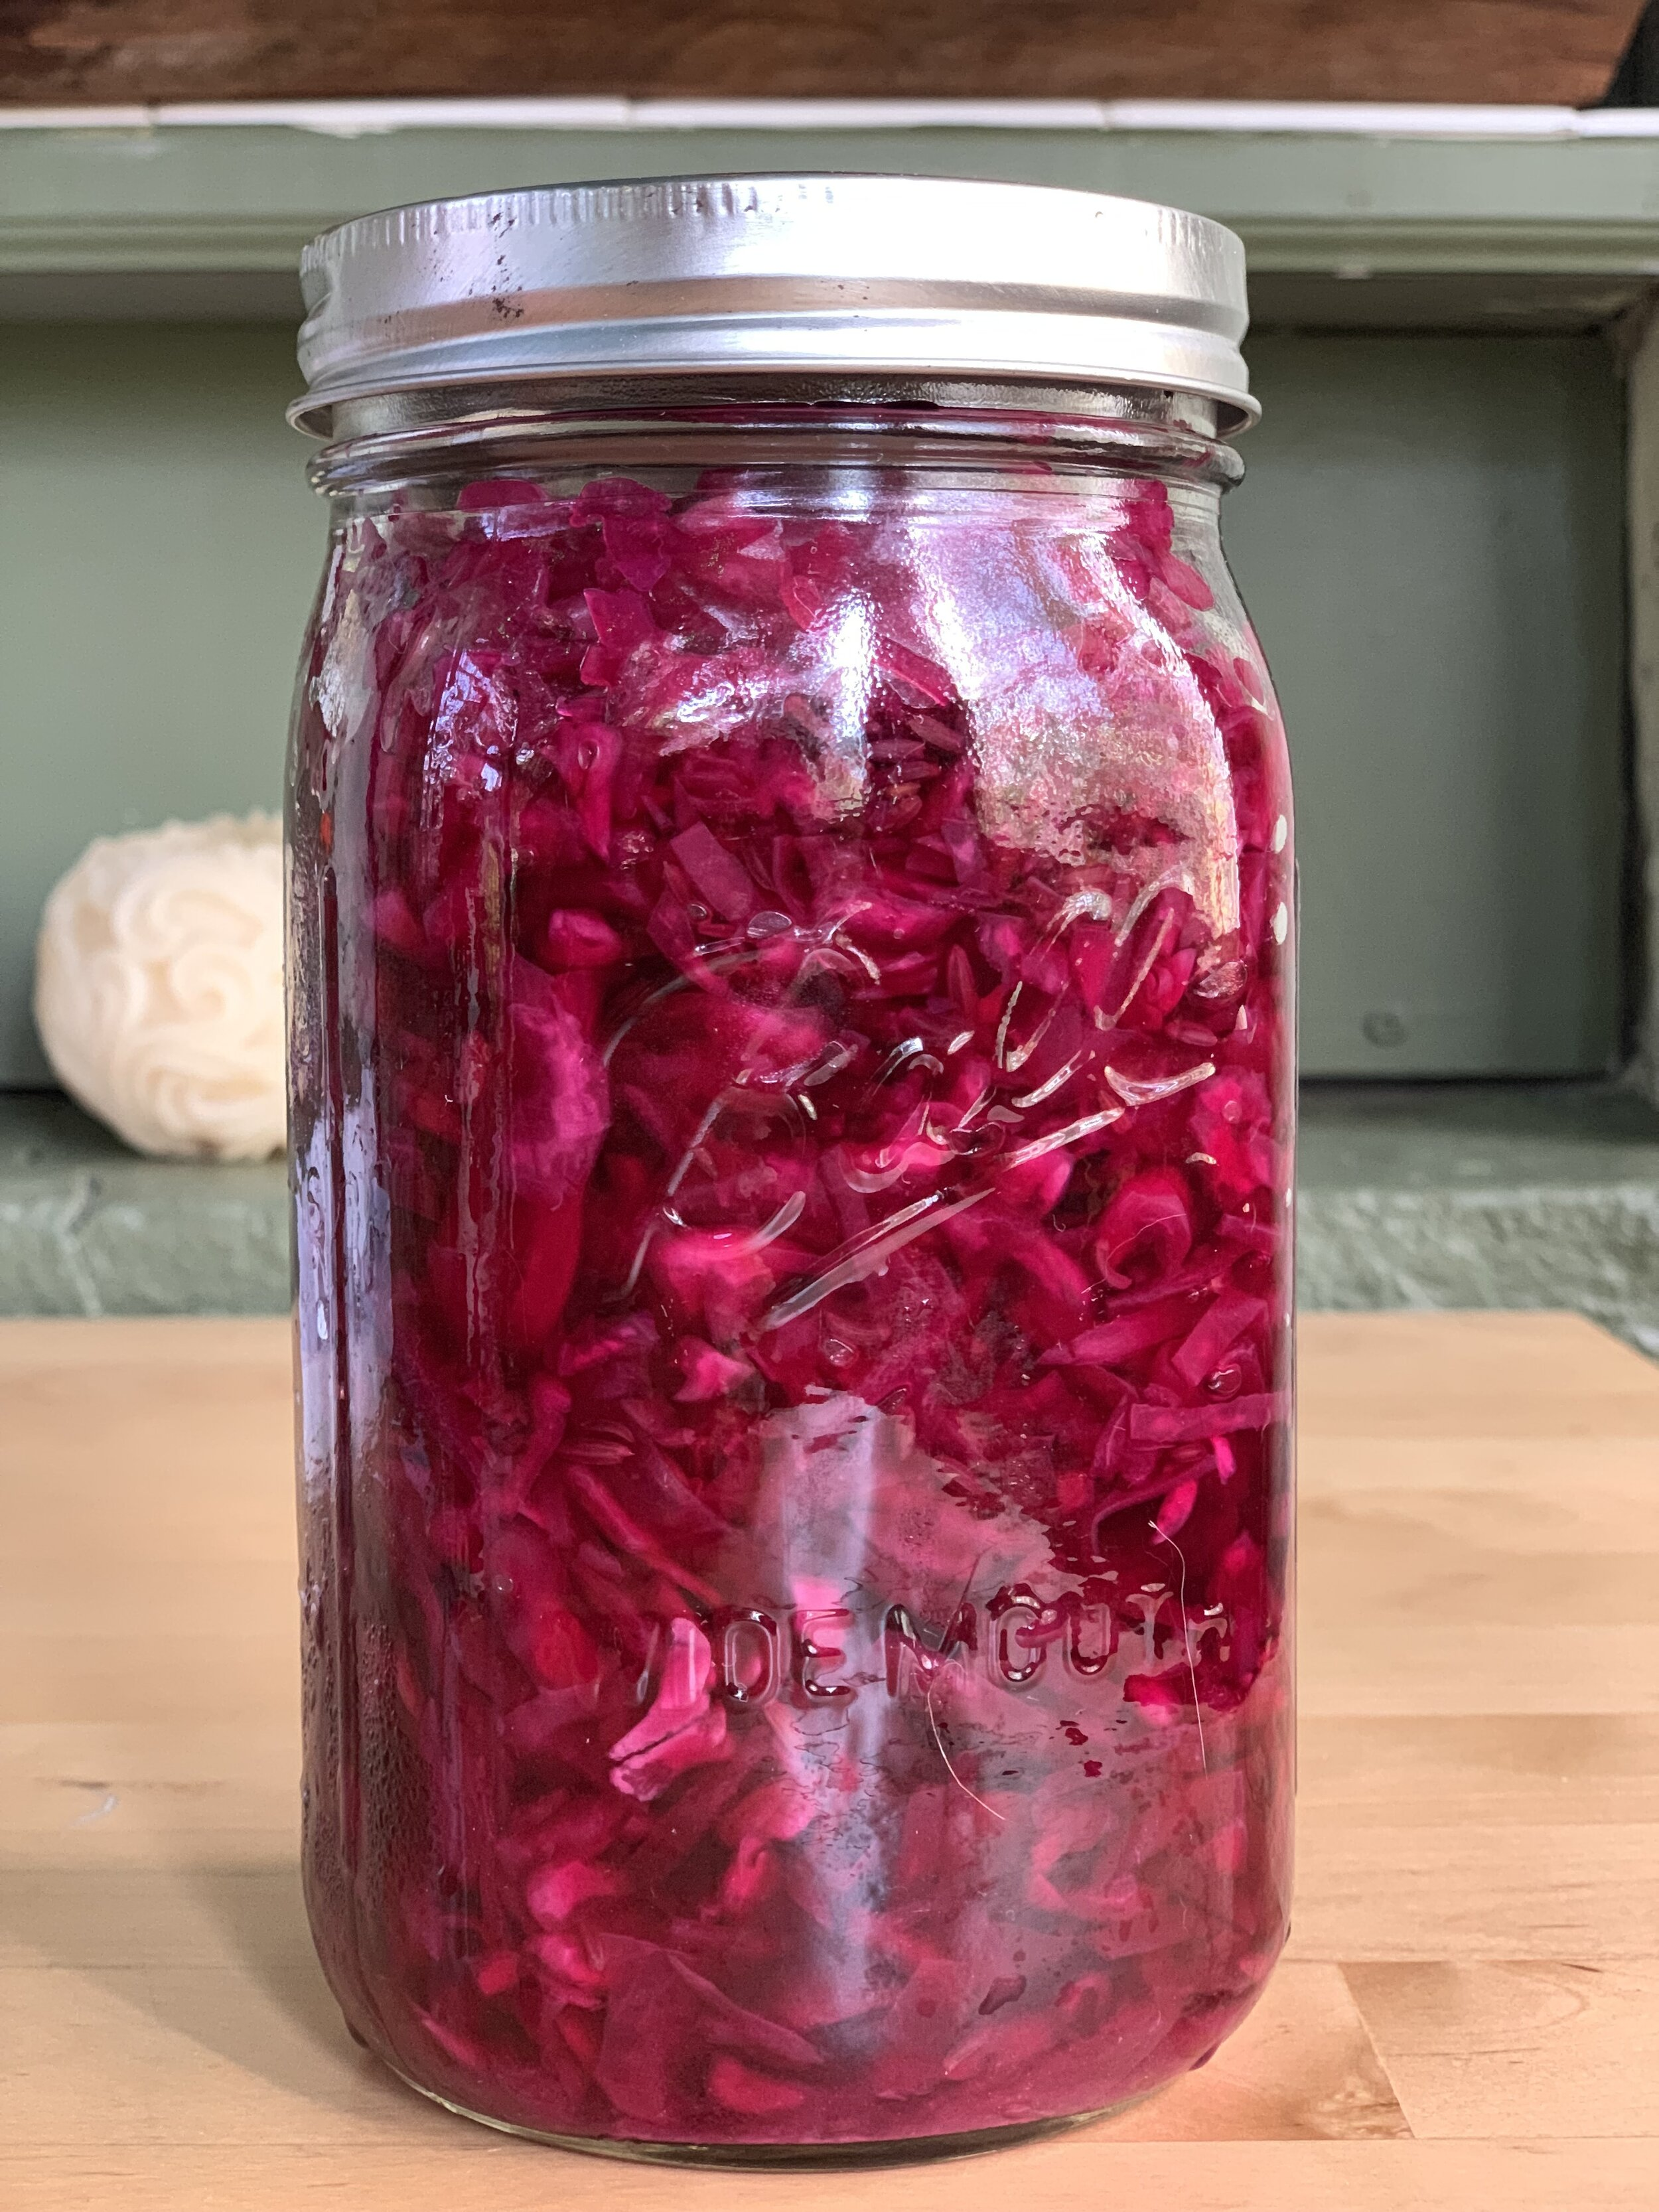 Karin, The sauerkraut is delicious! Everyone in my family raved about it. Thanks so much.Peter - Note from a private student learning to ferment sauerkraut. Shown is red sauerkraut with fennel for a slightly sweeter and fun color